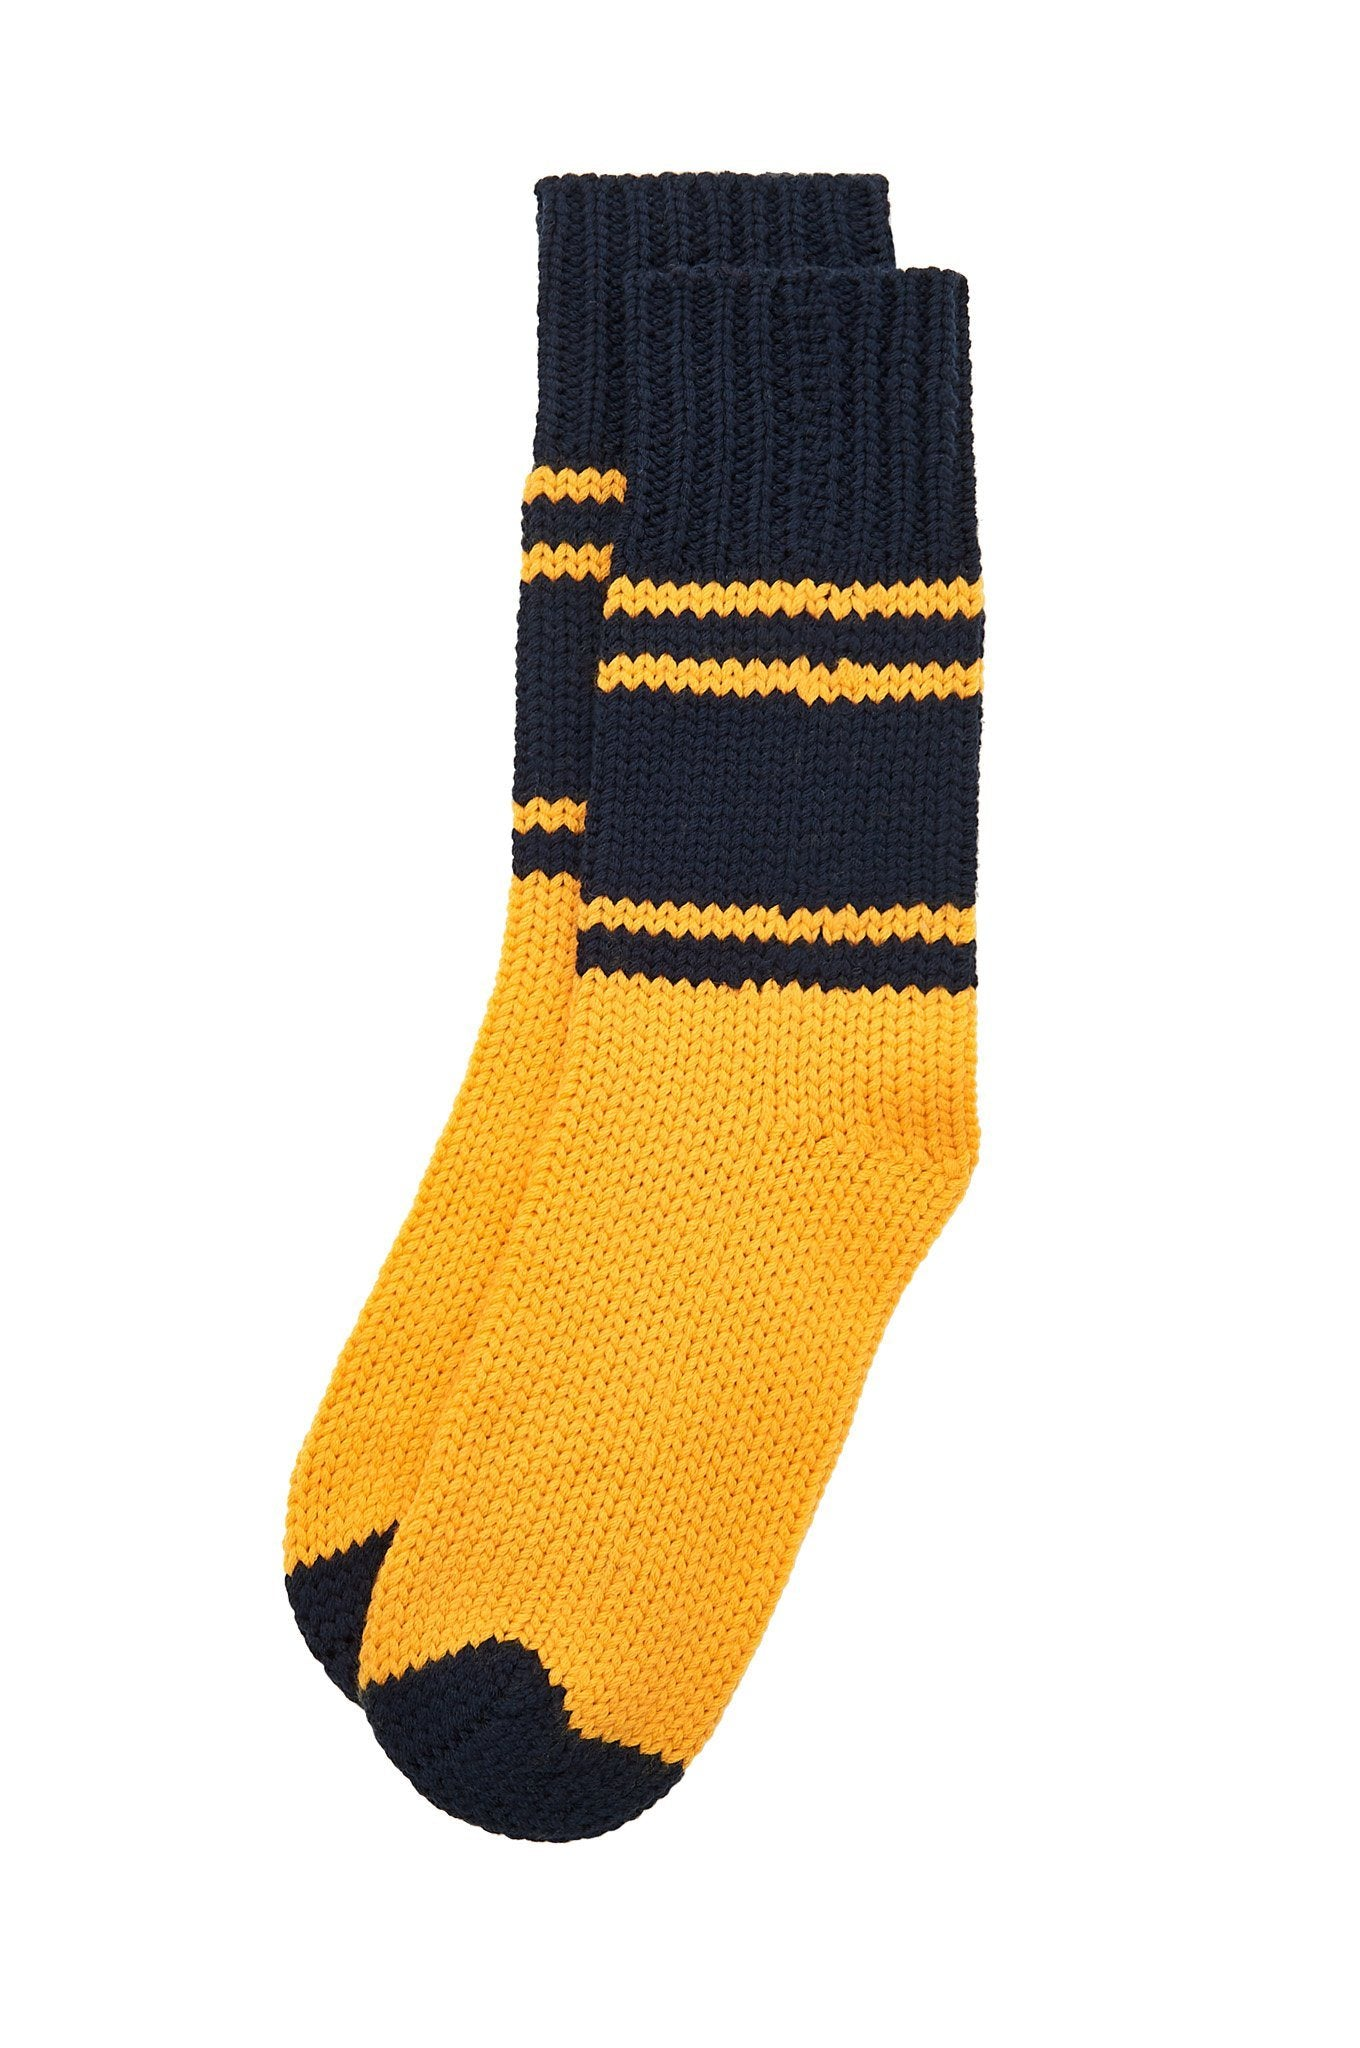 CABIN Merino Wool Socks Marigold - Komodo Fashion